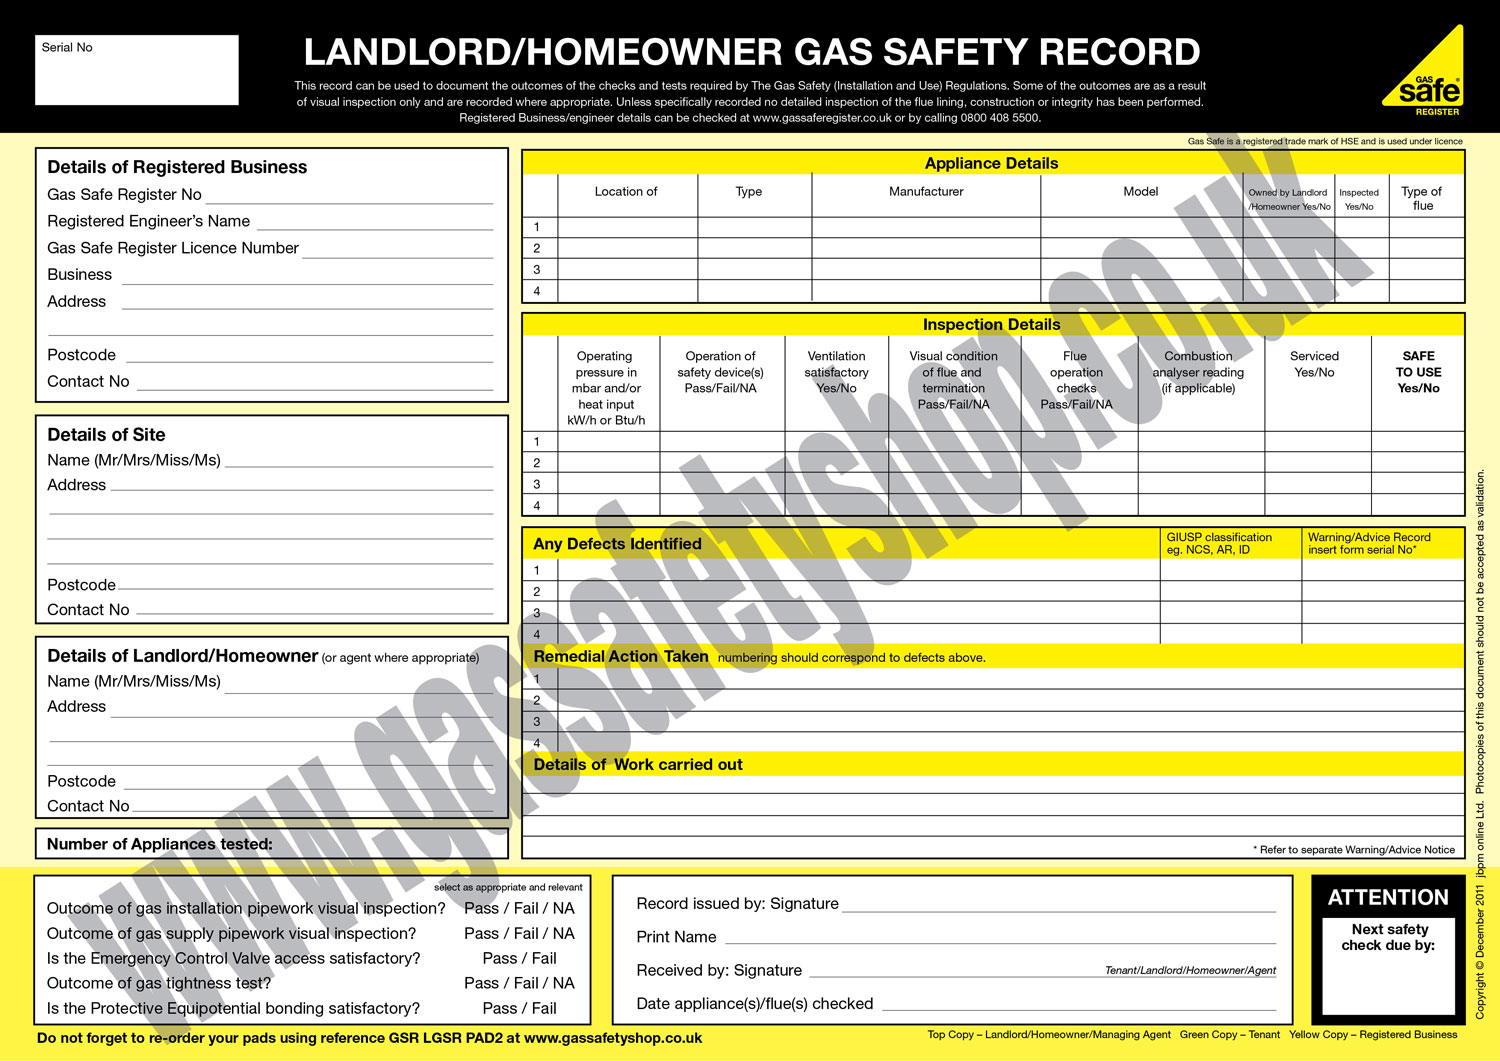 Sample Gas Safety Certificate